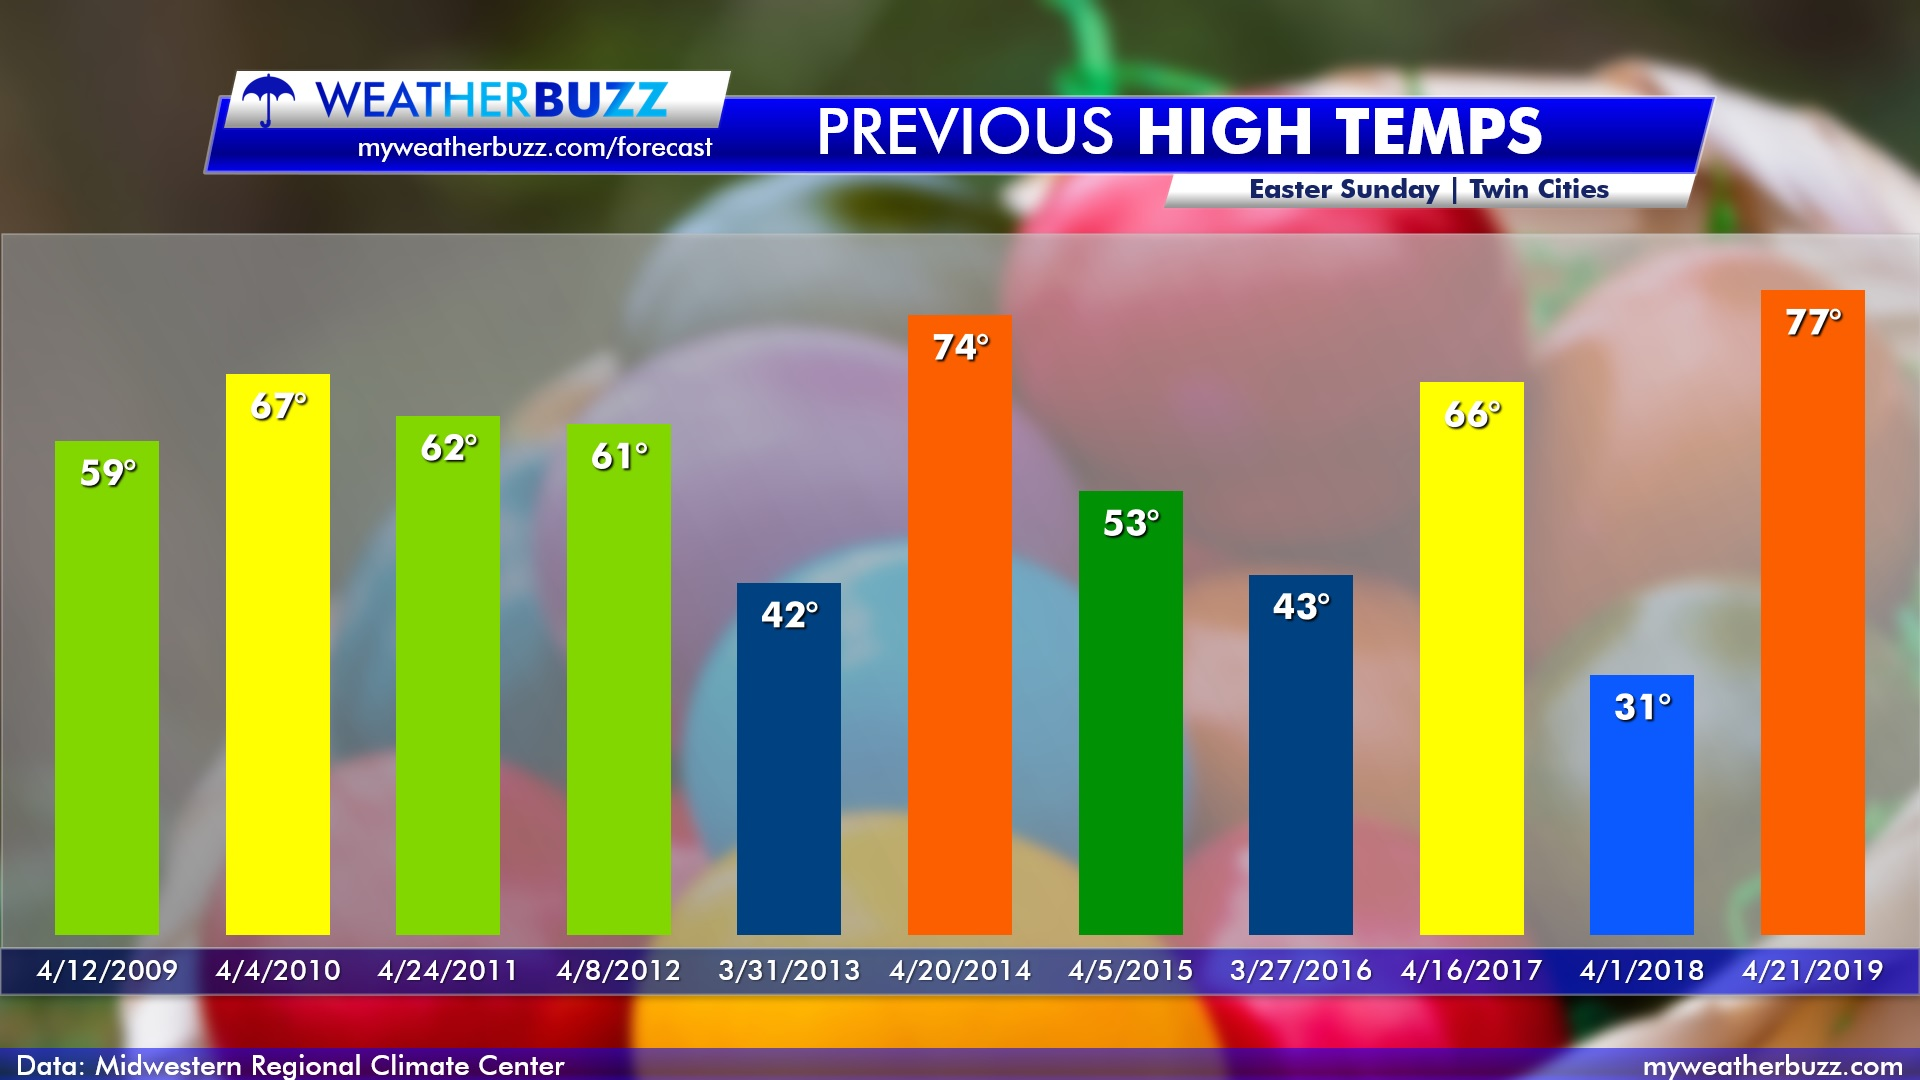 Past 10 Year High Temperatures on Easter Sunday